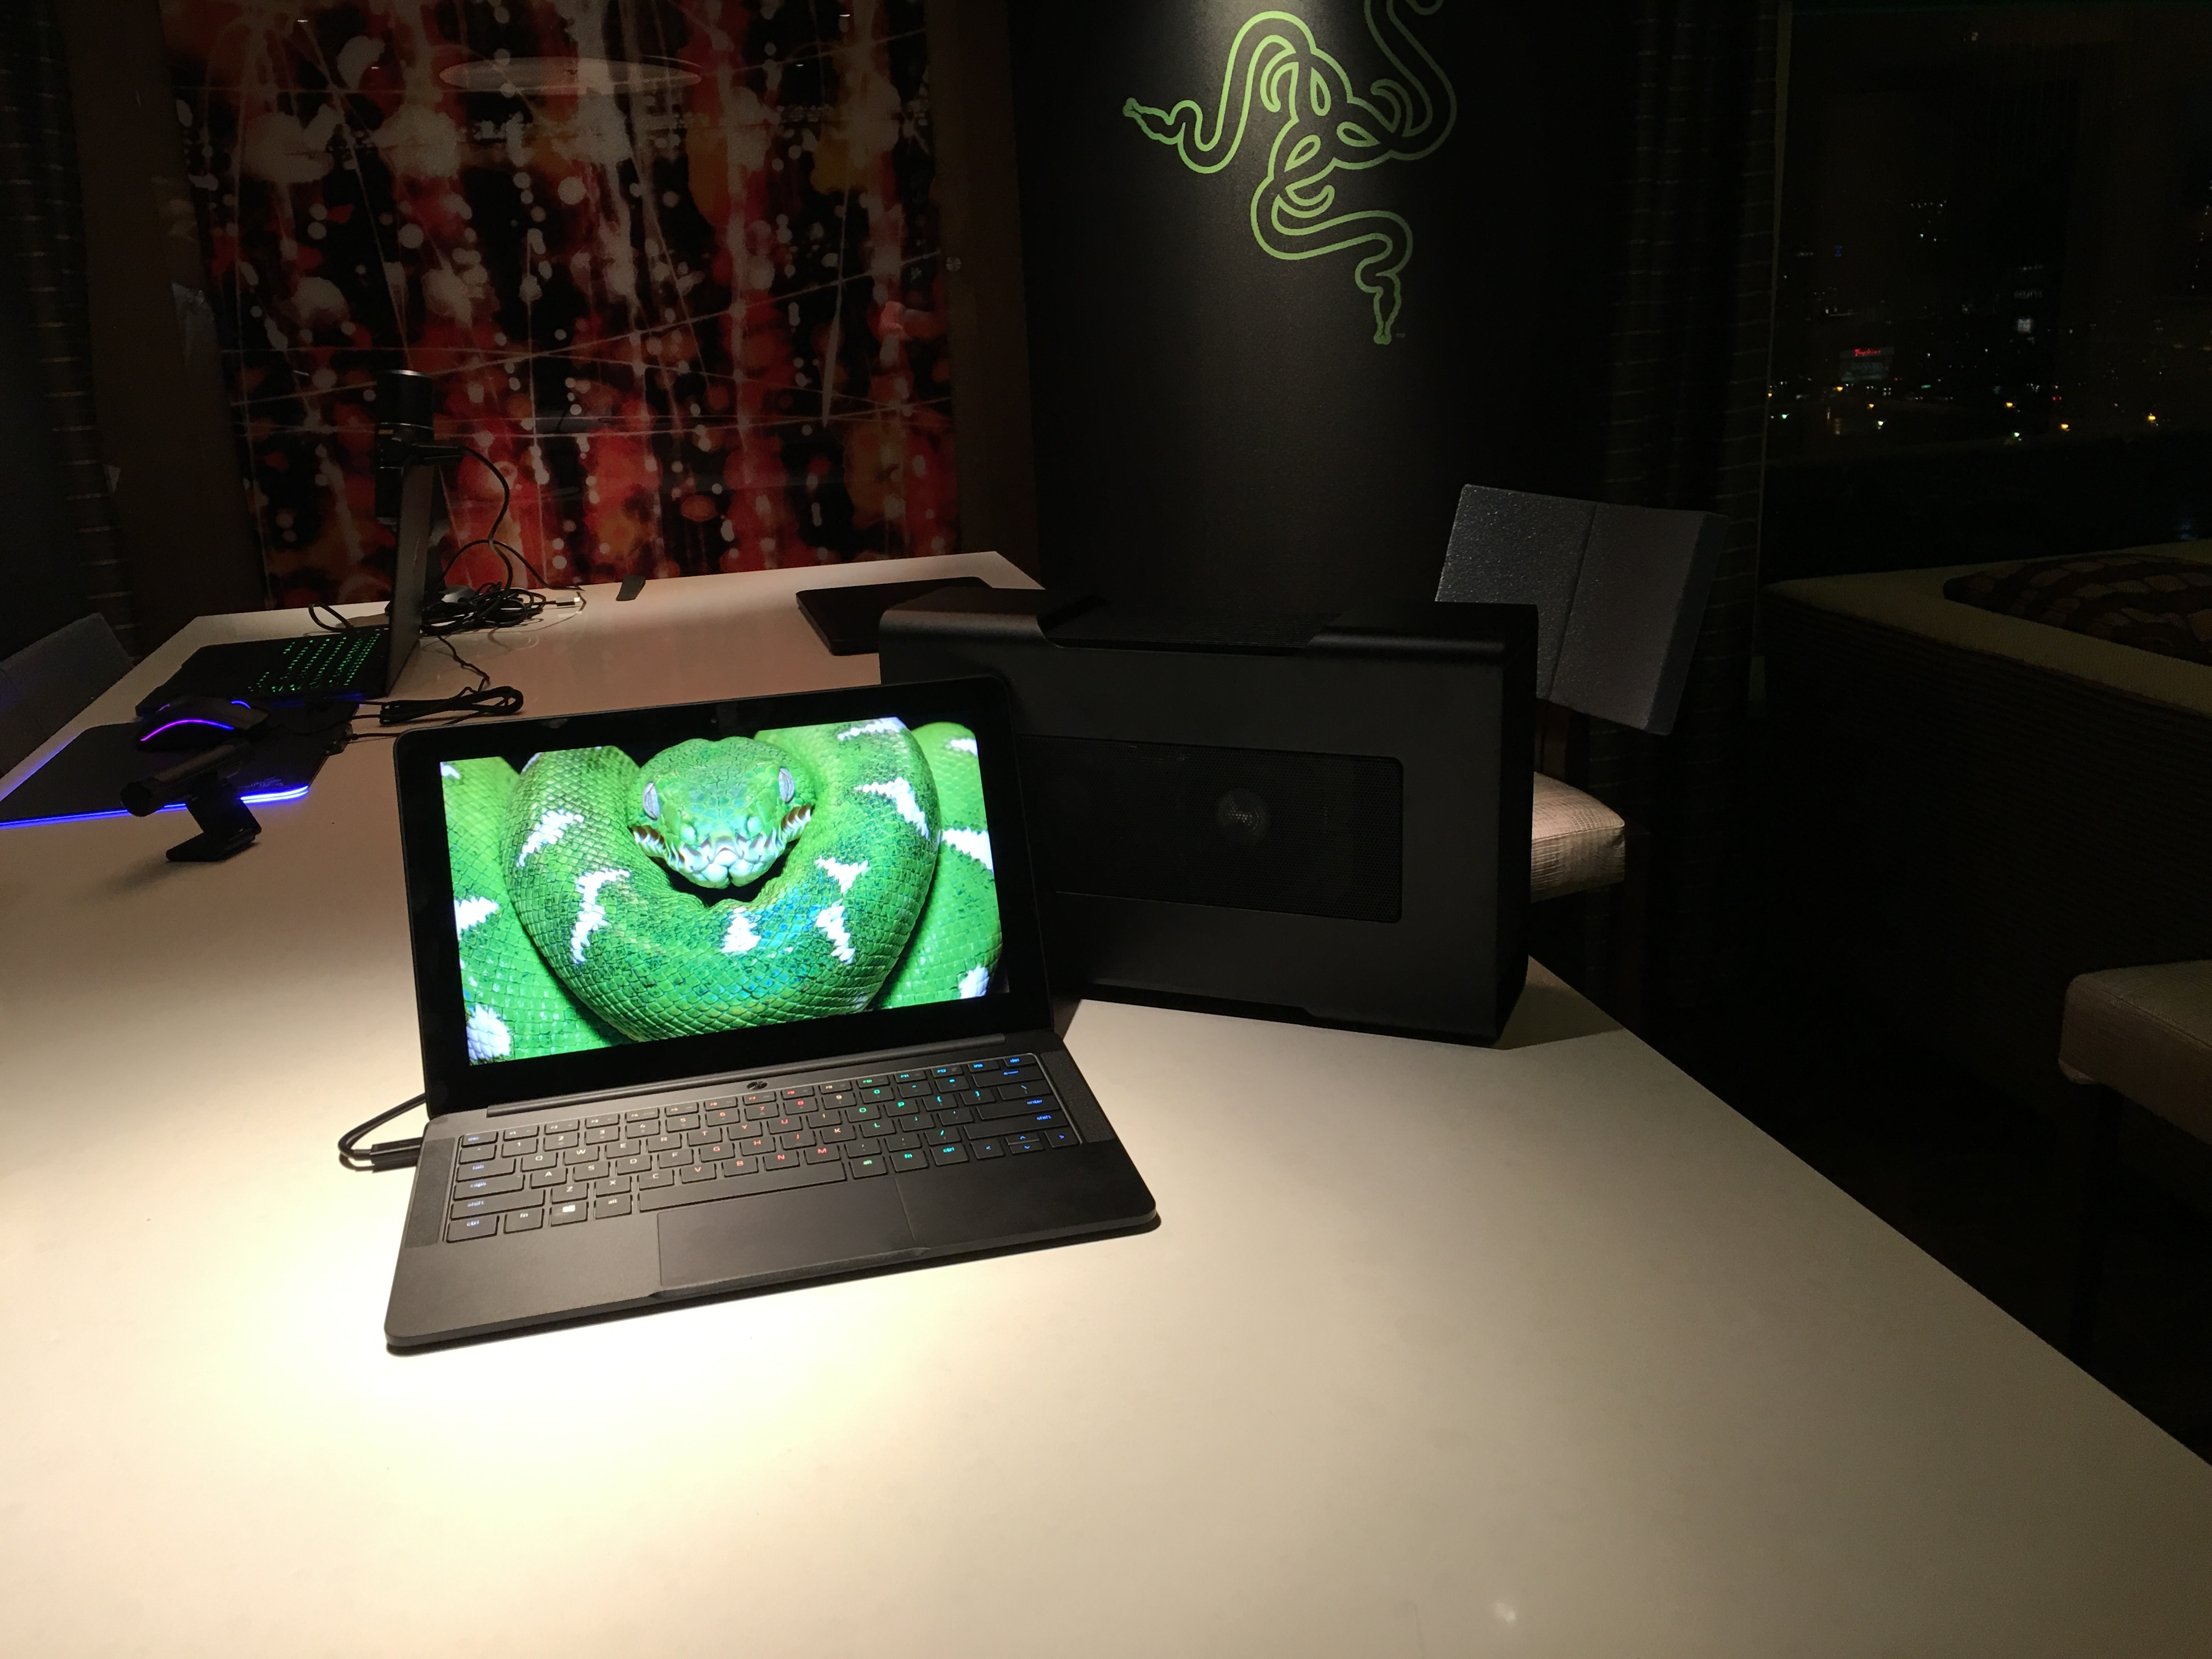 Hands-on with Razer's surprise of CES: An affordable, beautiful ultrabook